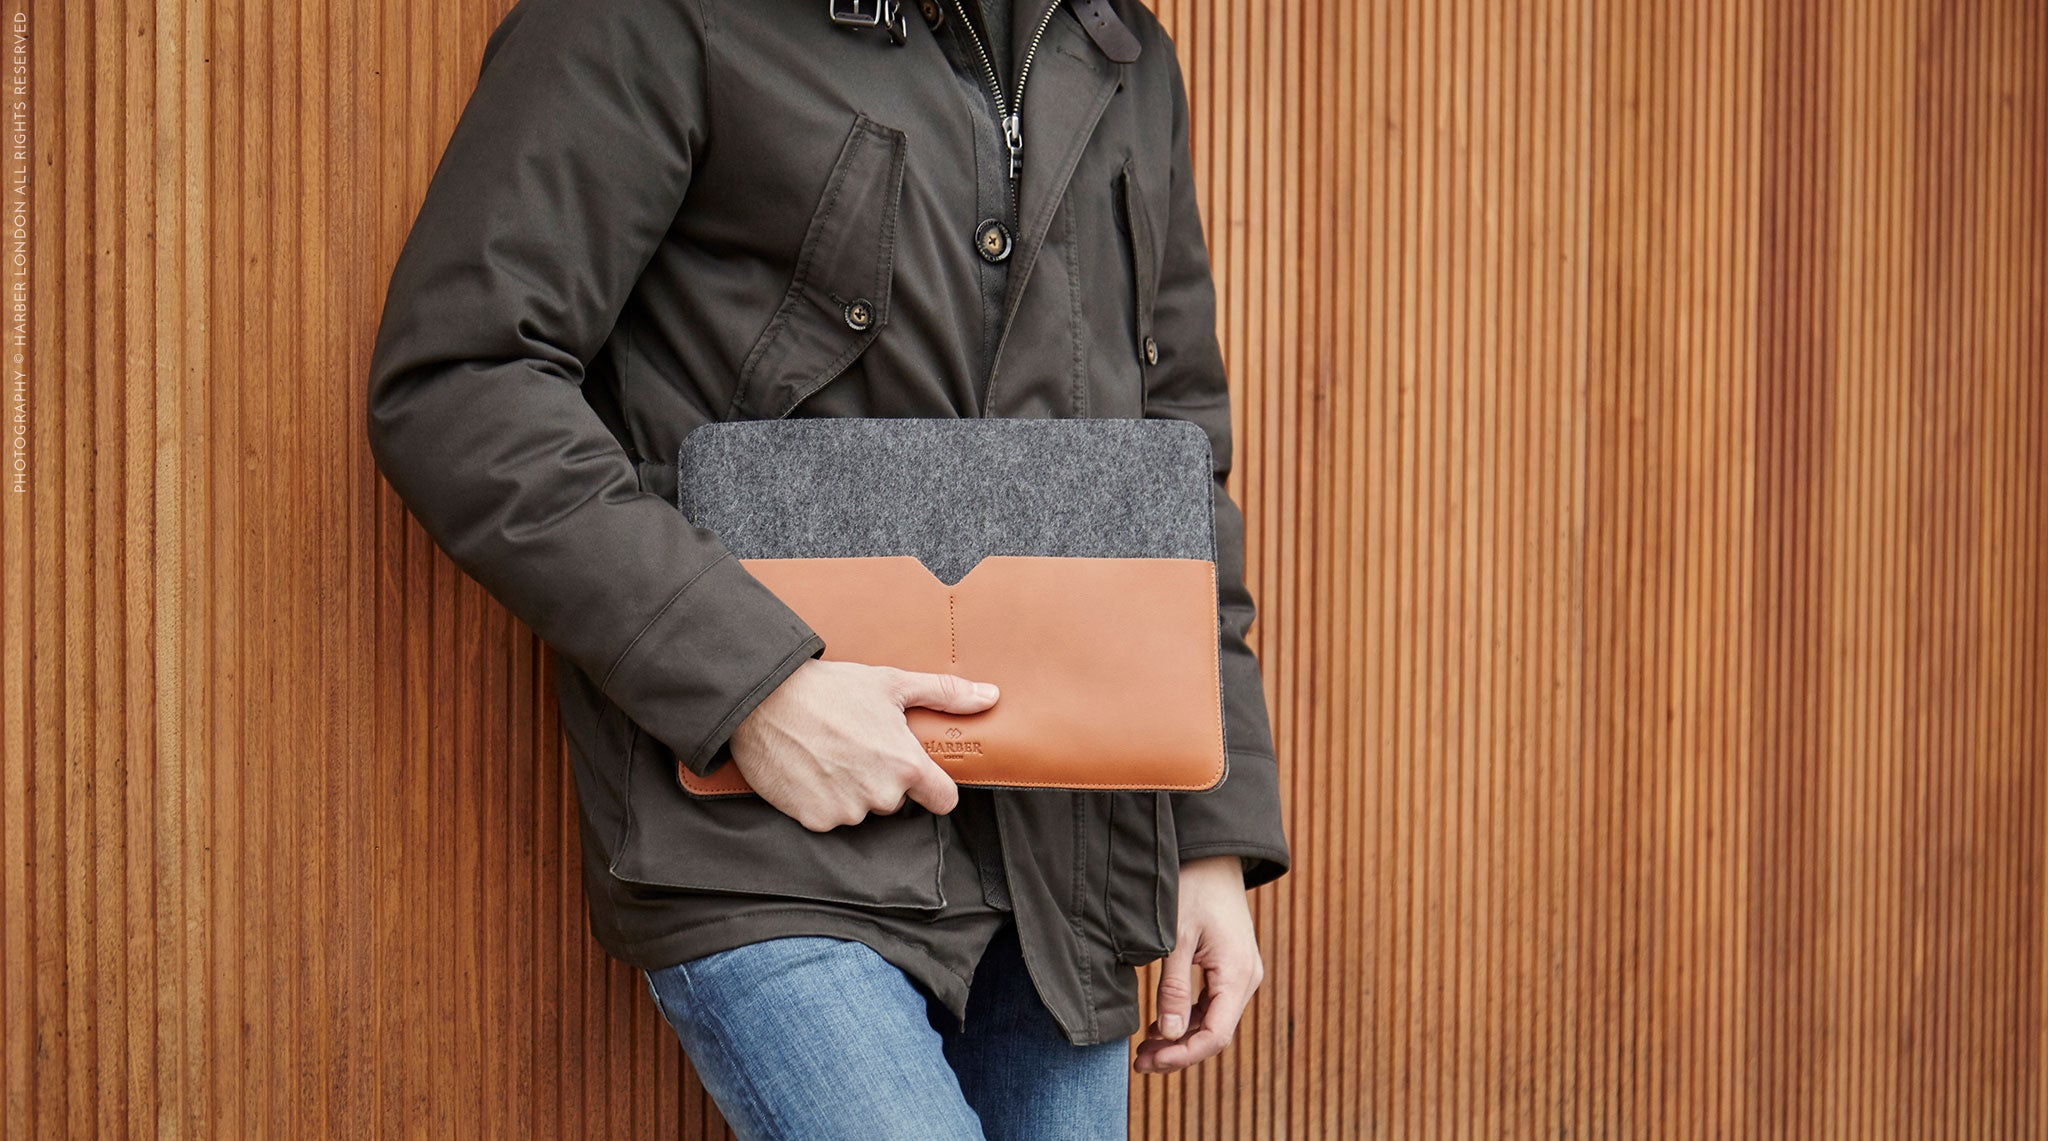 Harber London Classic Leather MacBook Cover Sleeve model